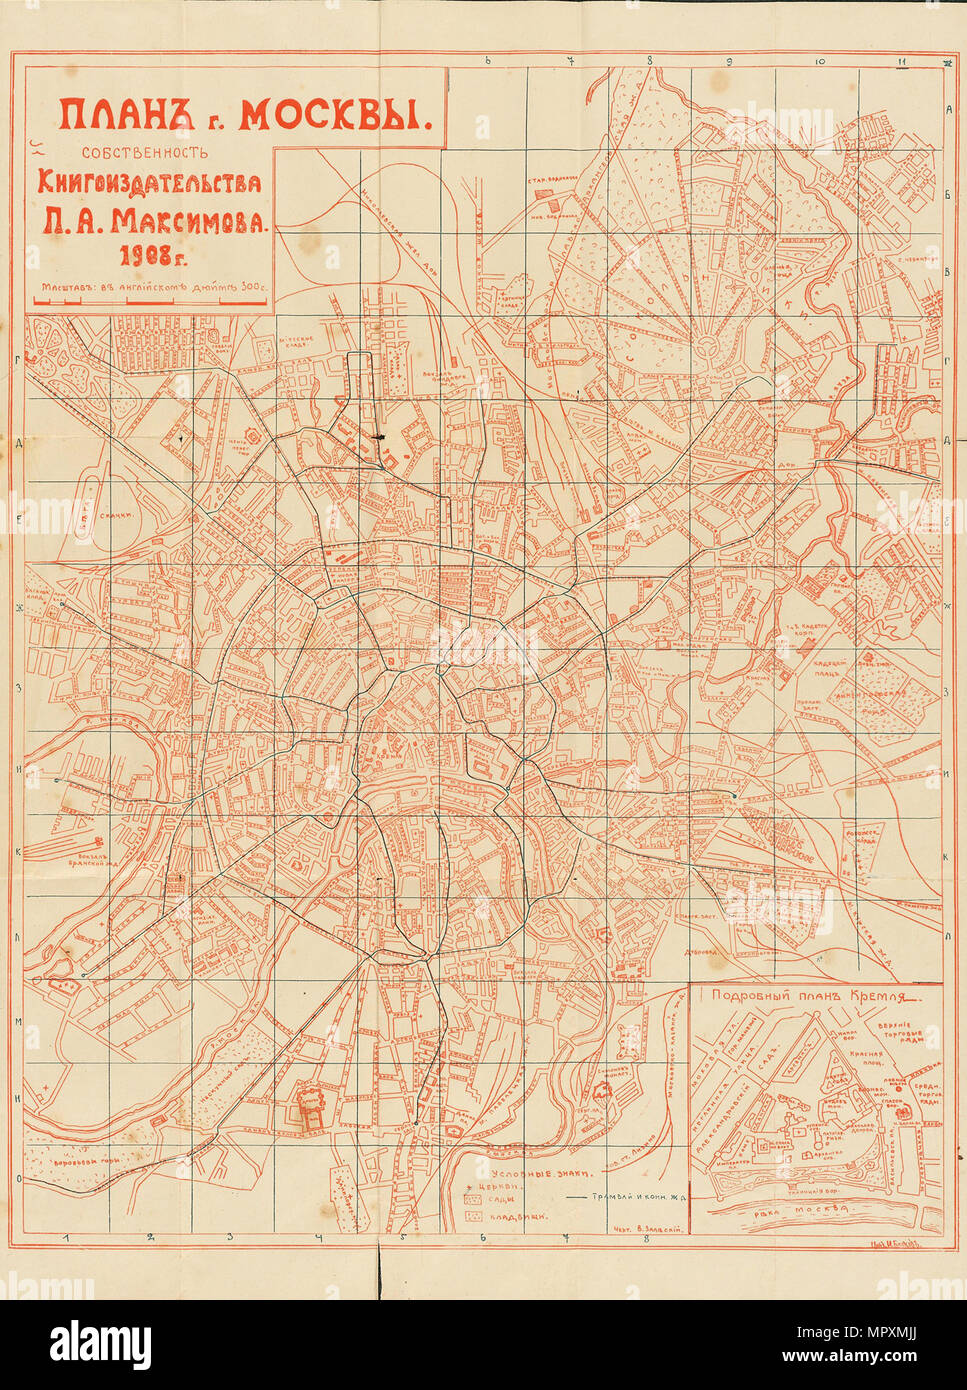 Plan of Moscow, 1908. - Stock Image